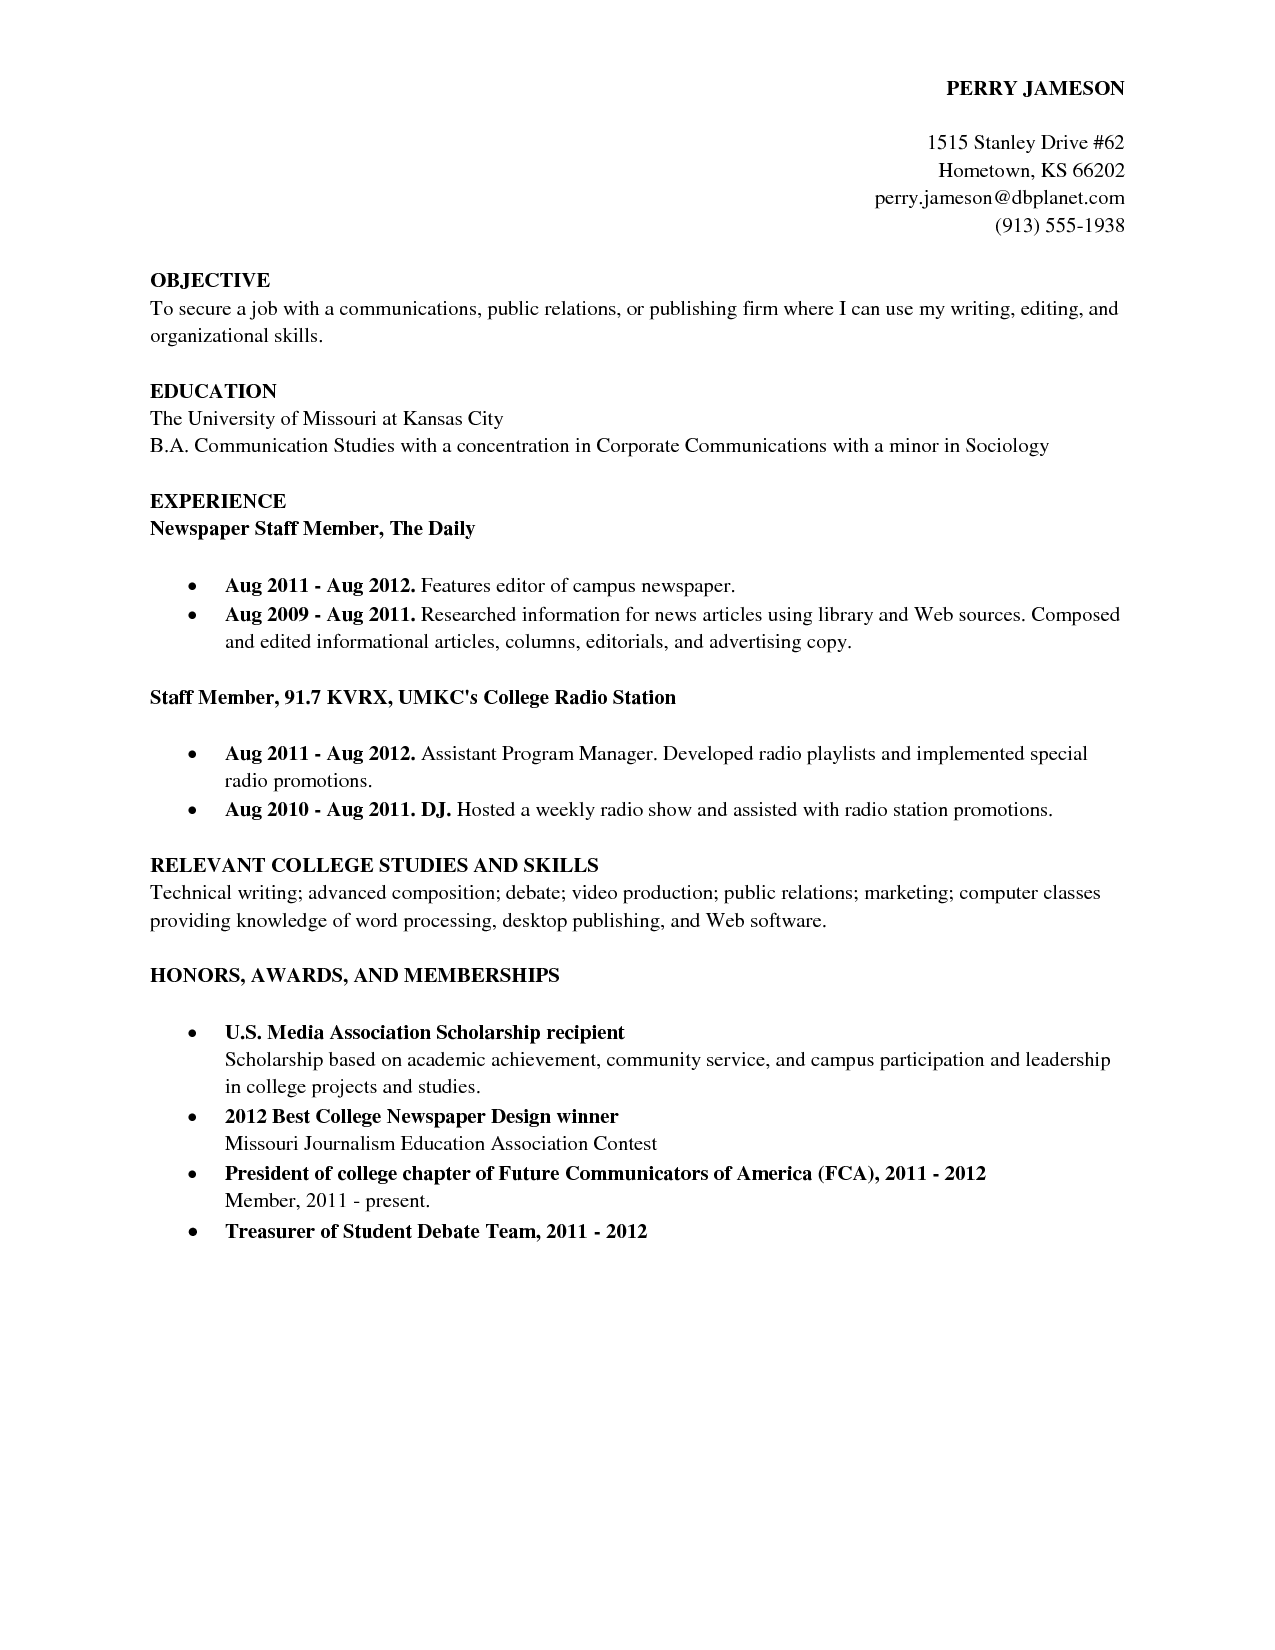 Resume Template College Student How To Write Resume College Student Free Resume Builder Resume